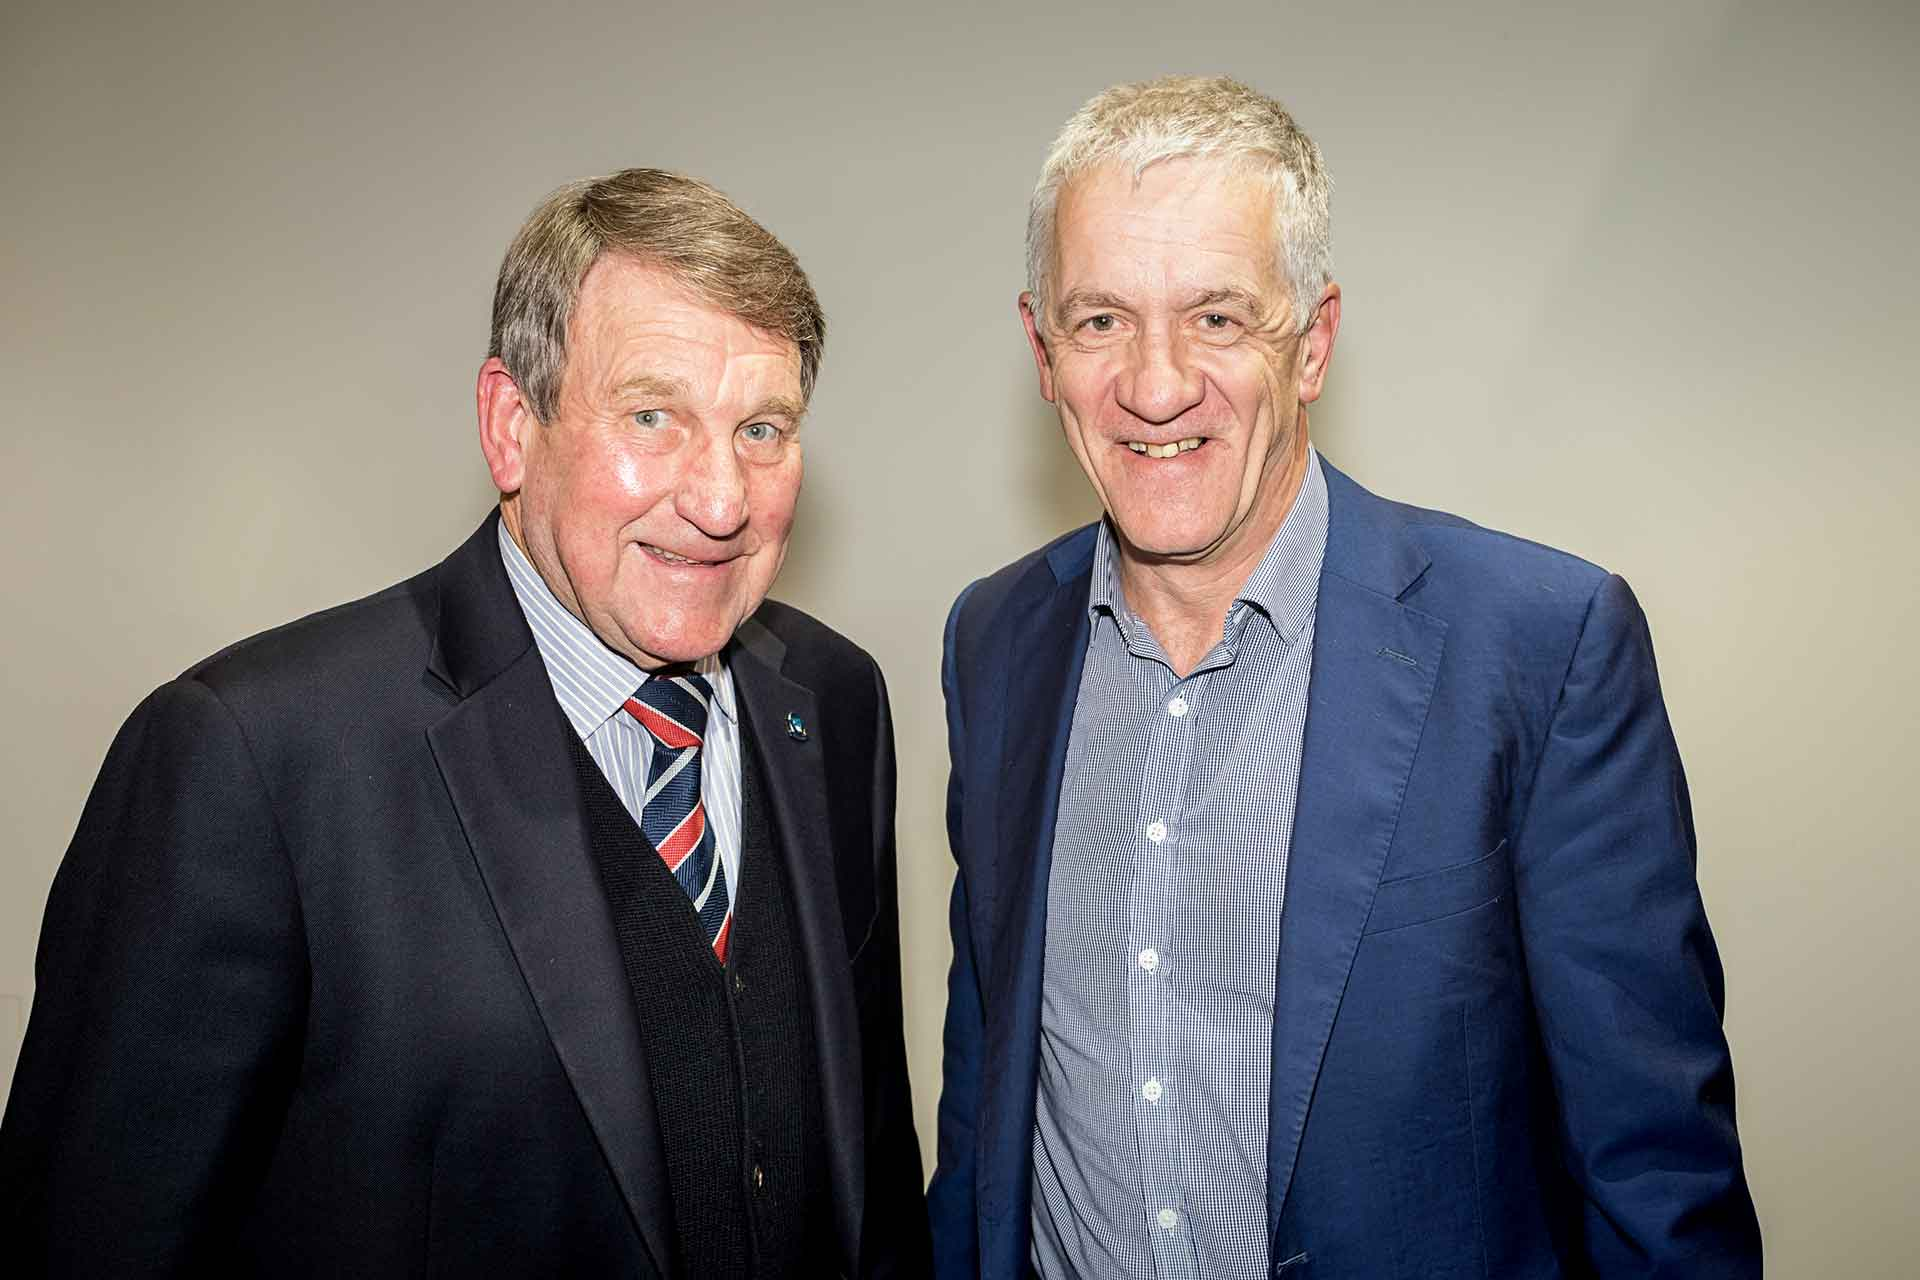 Ian McNamee closes his innings as Chairman of Cricket ACT